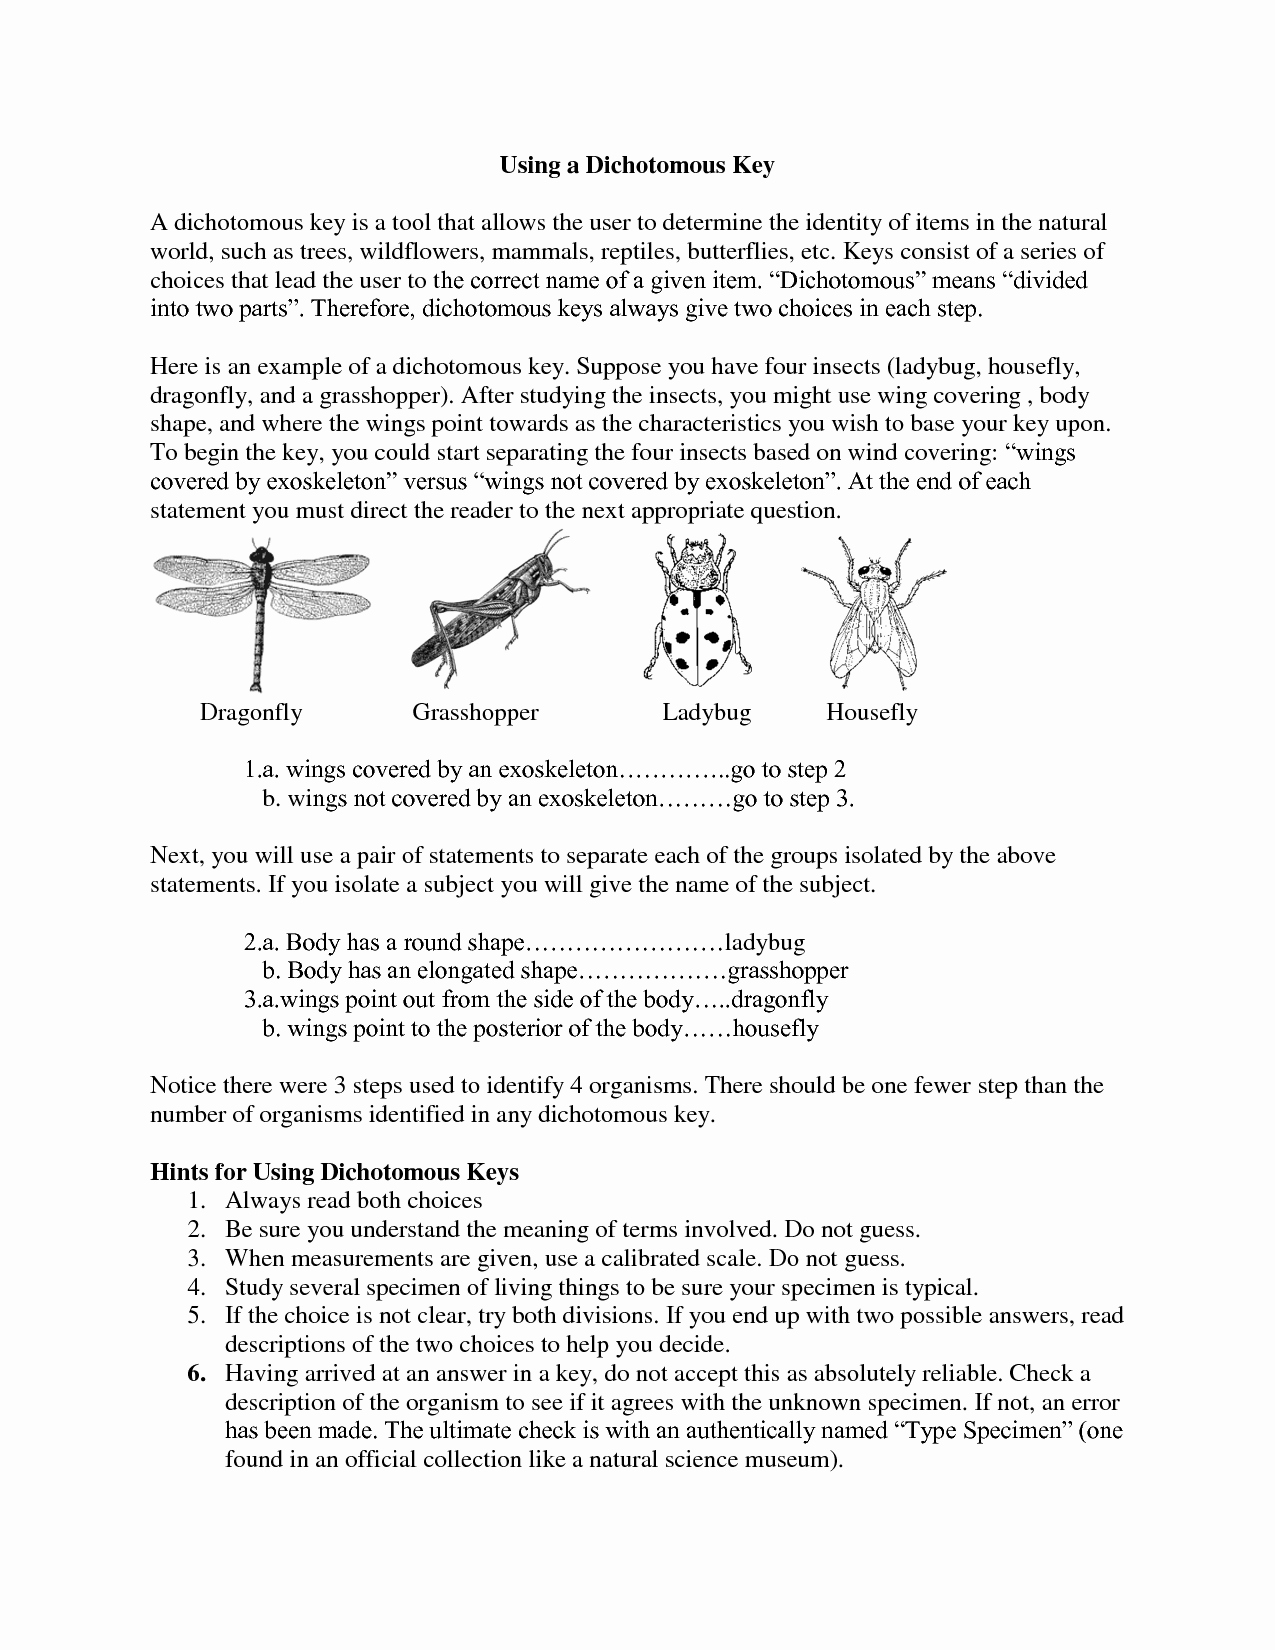 50 Dichotomous Key Worksheet